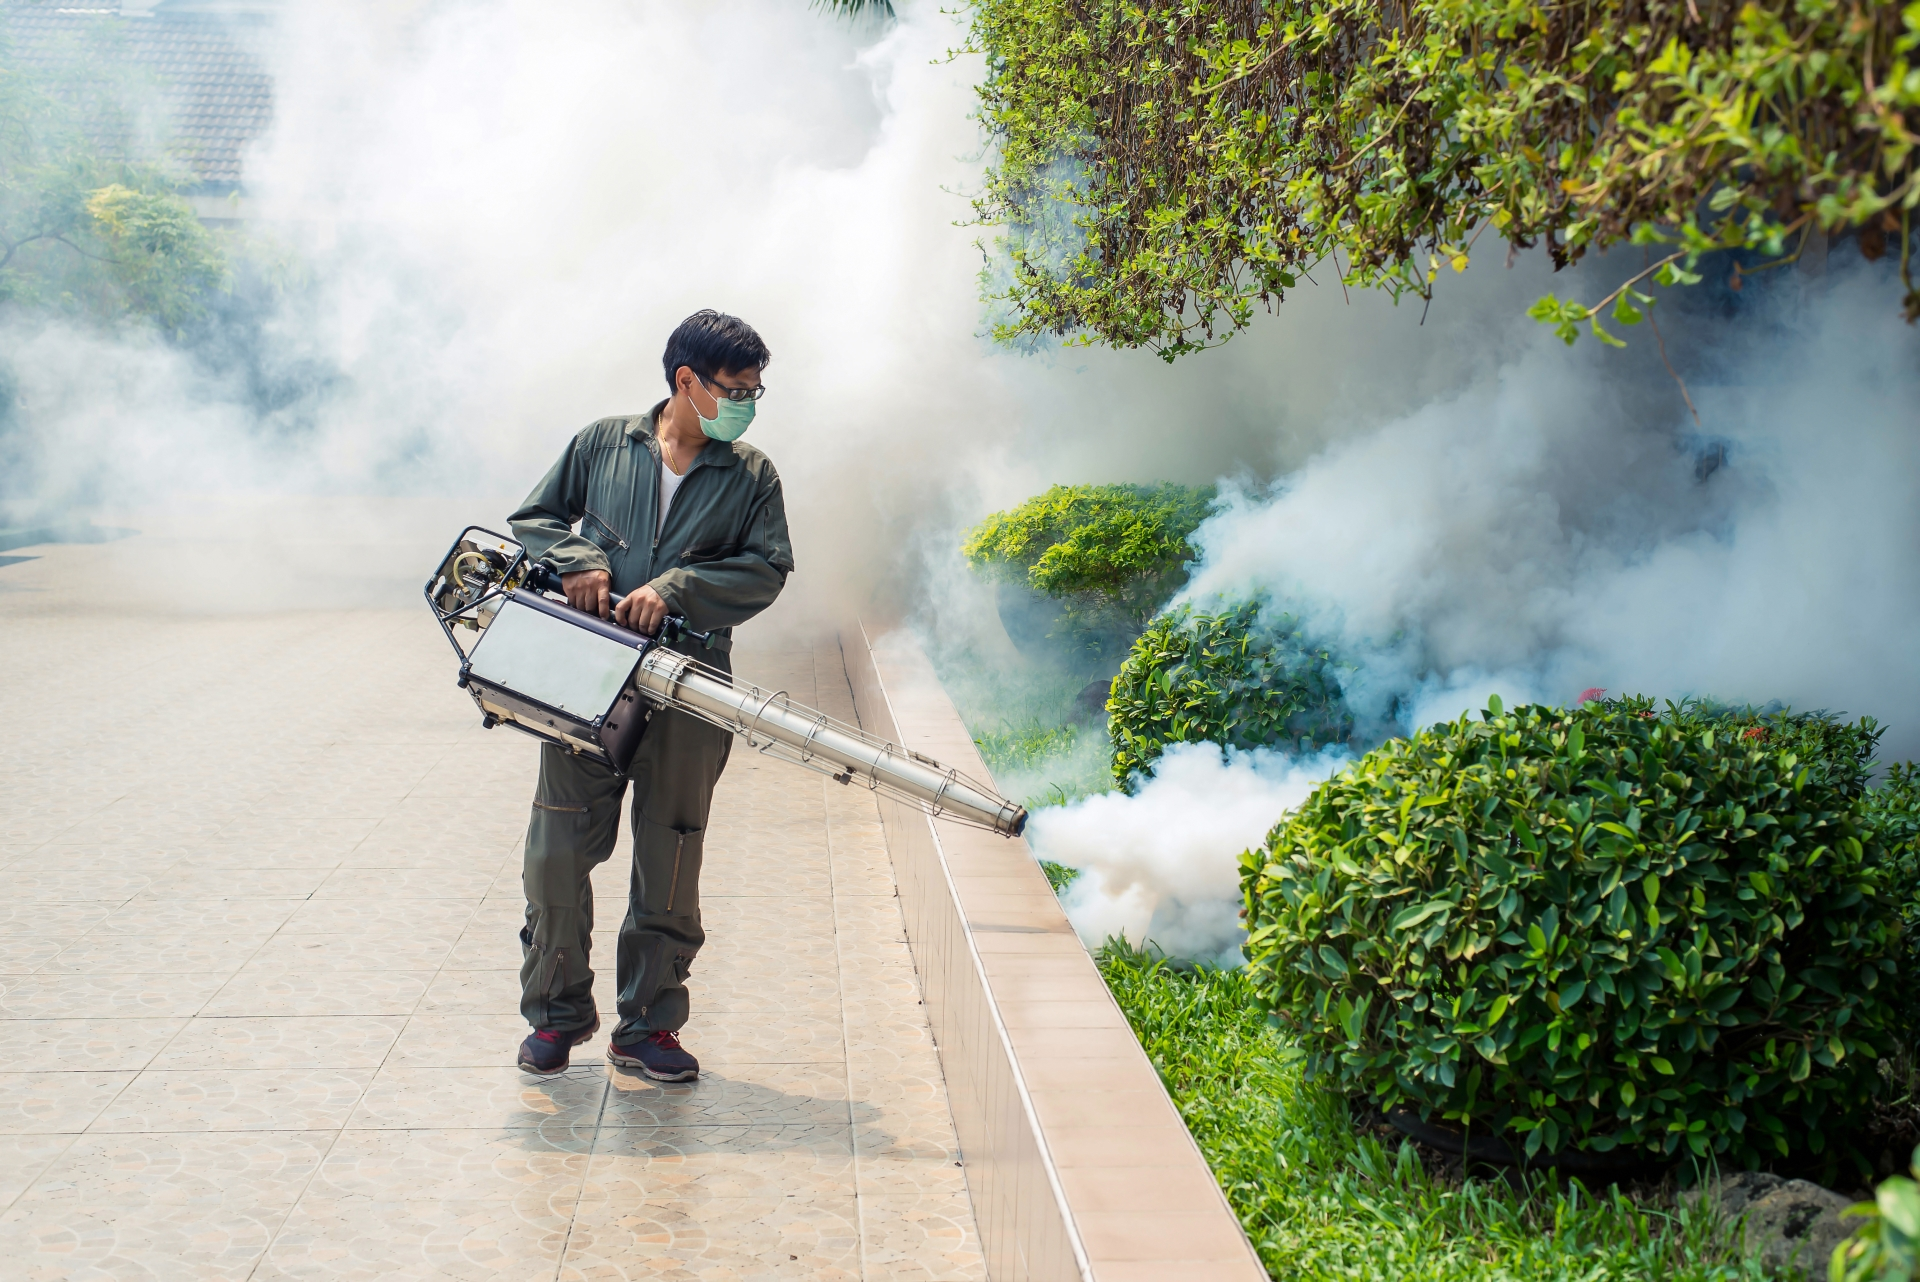 Bug Control, Pest Control in Upper Edmonton, N18. Call Now 020 8166 9746